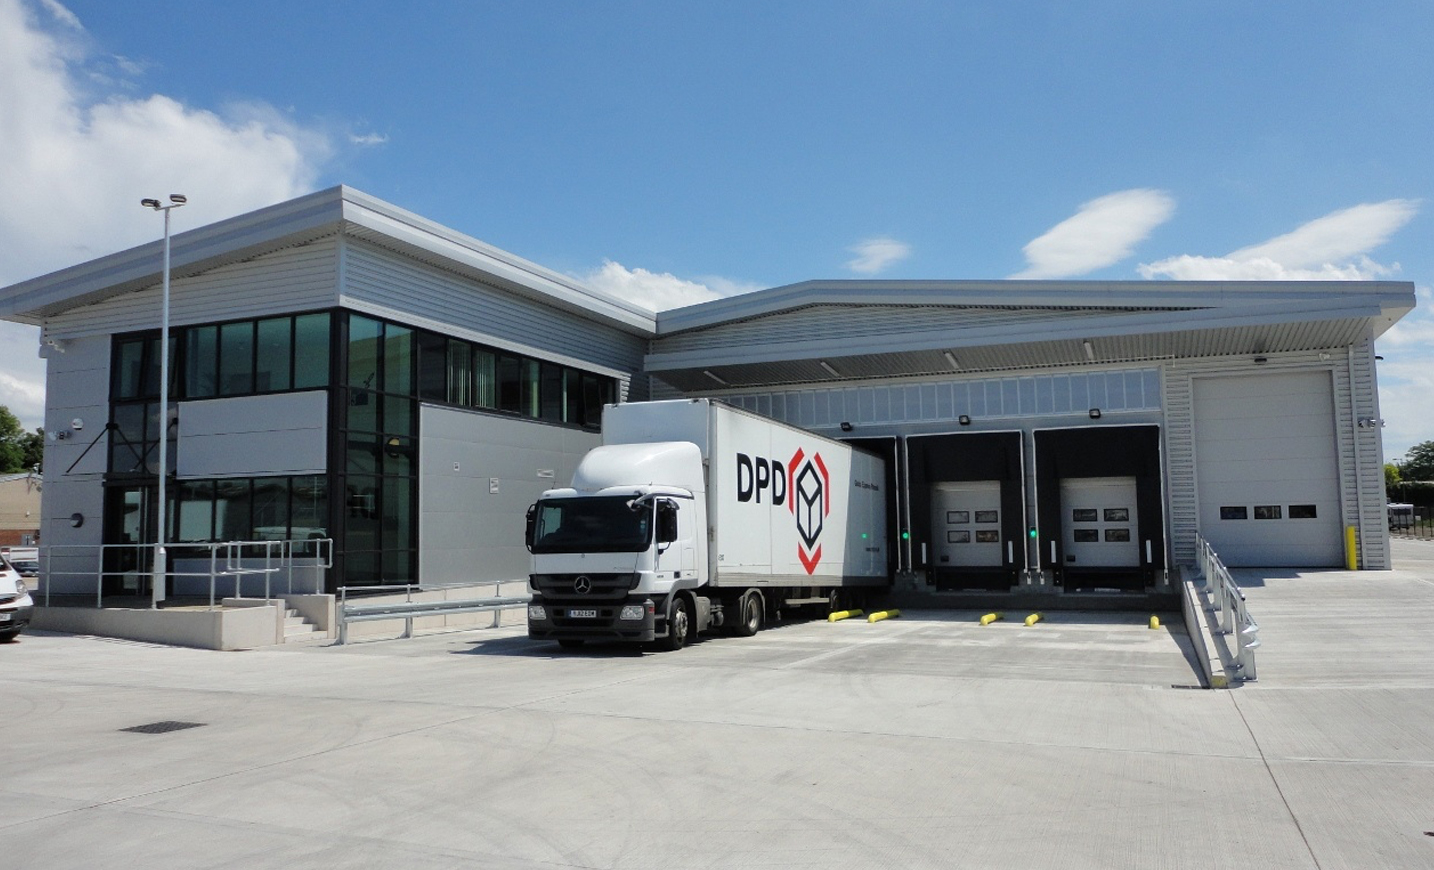 Dpd Invests 163 10m In New Distribution Centre And Four New